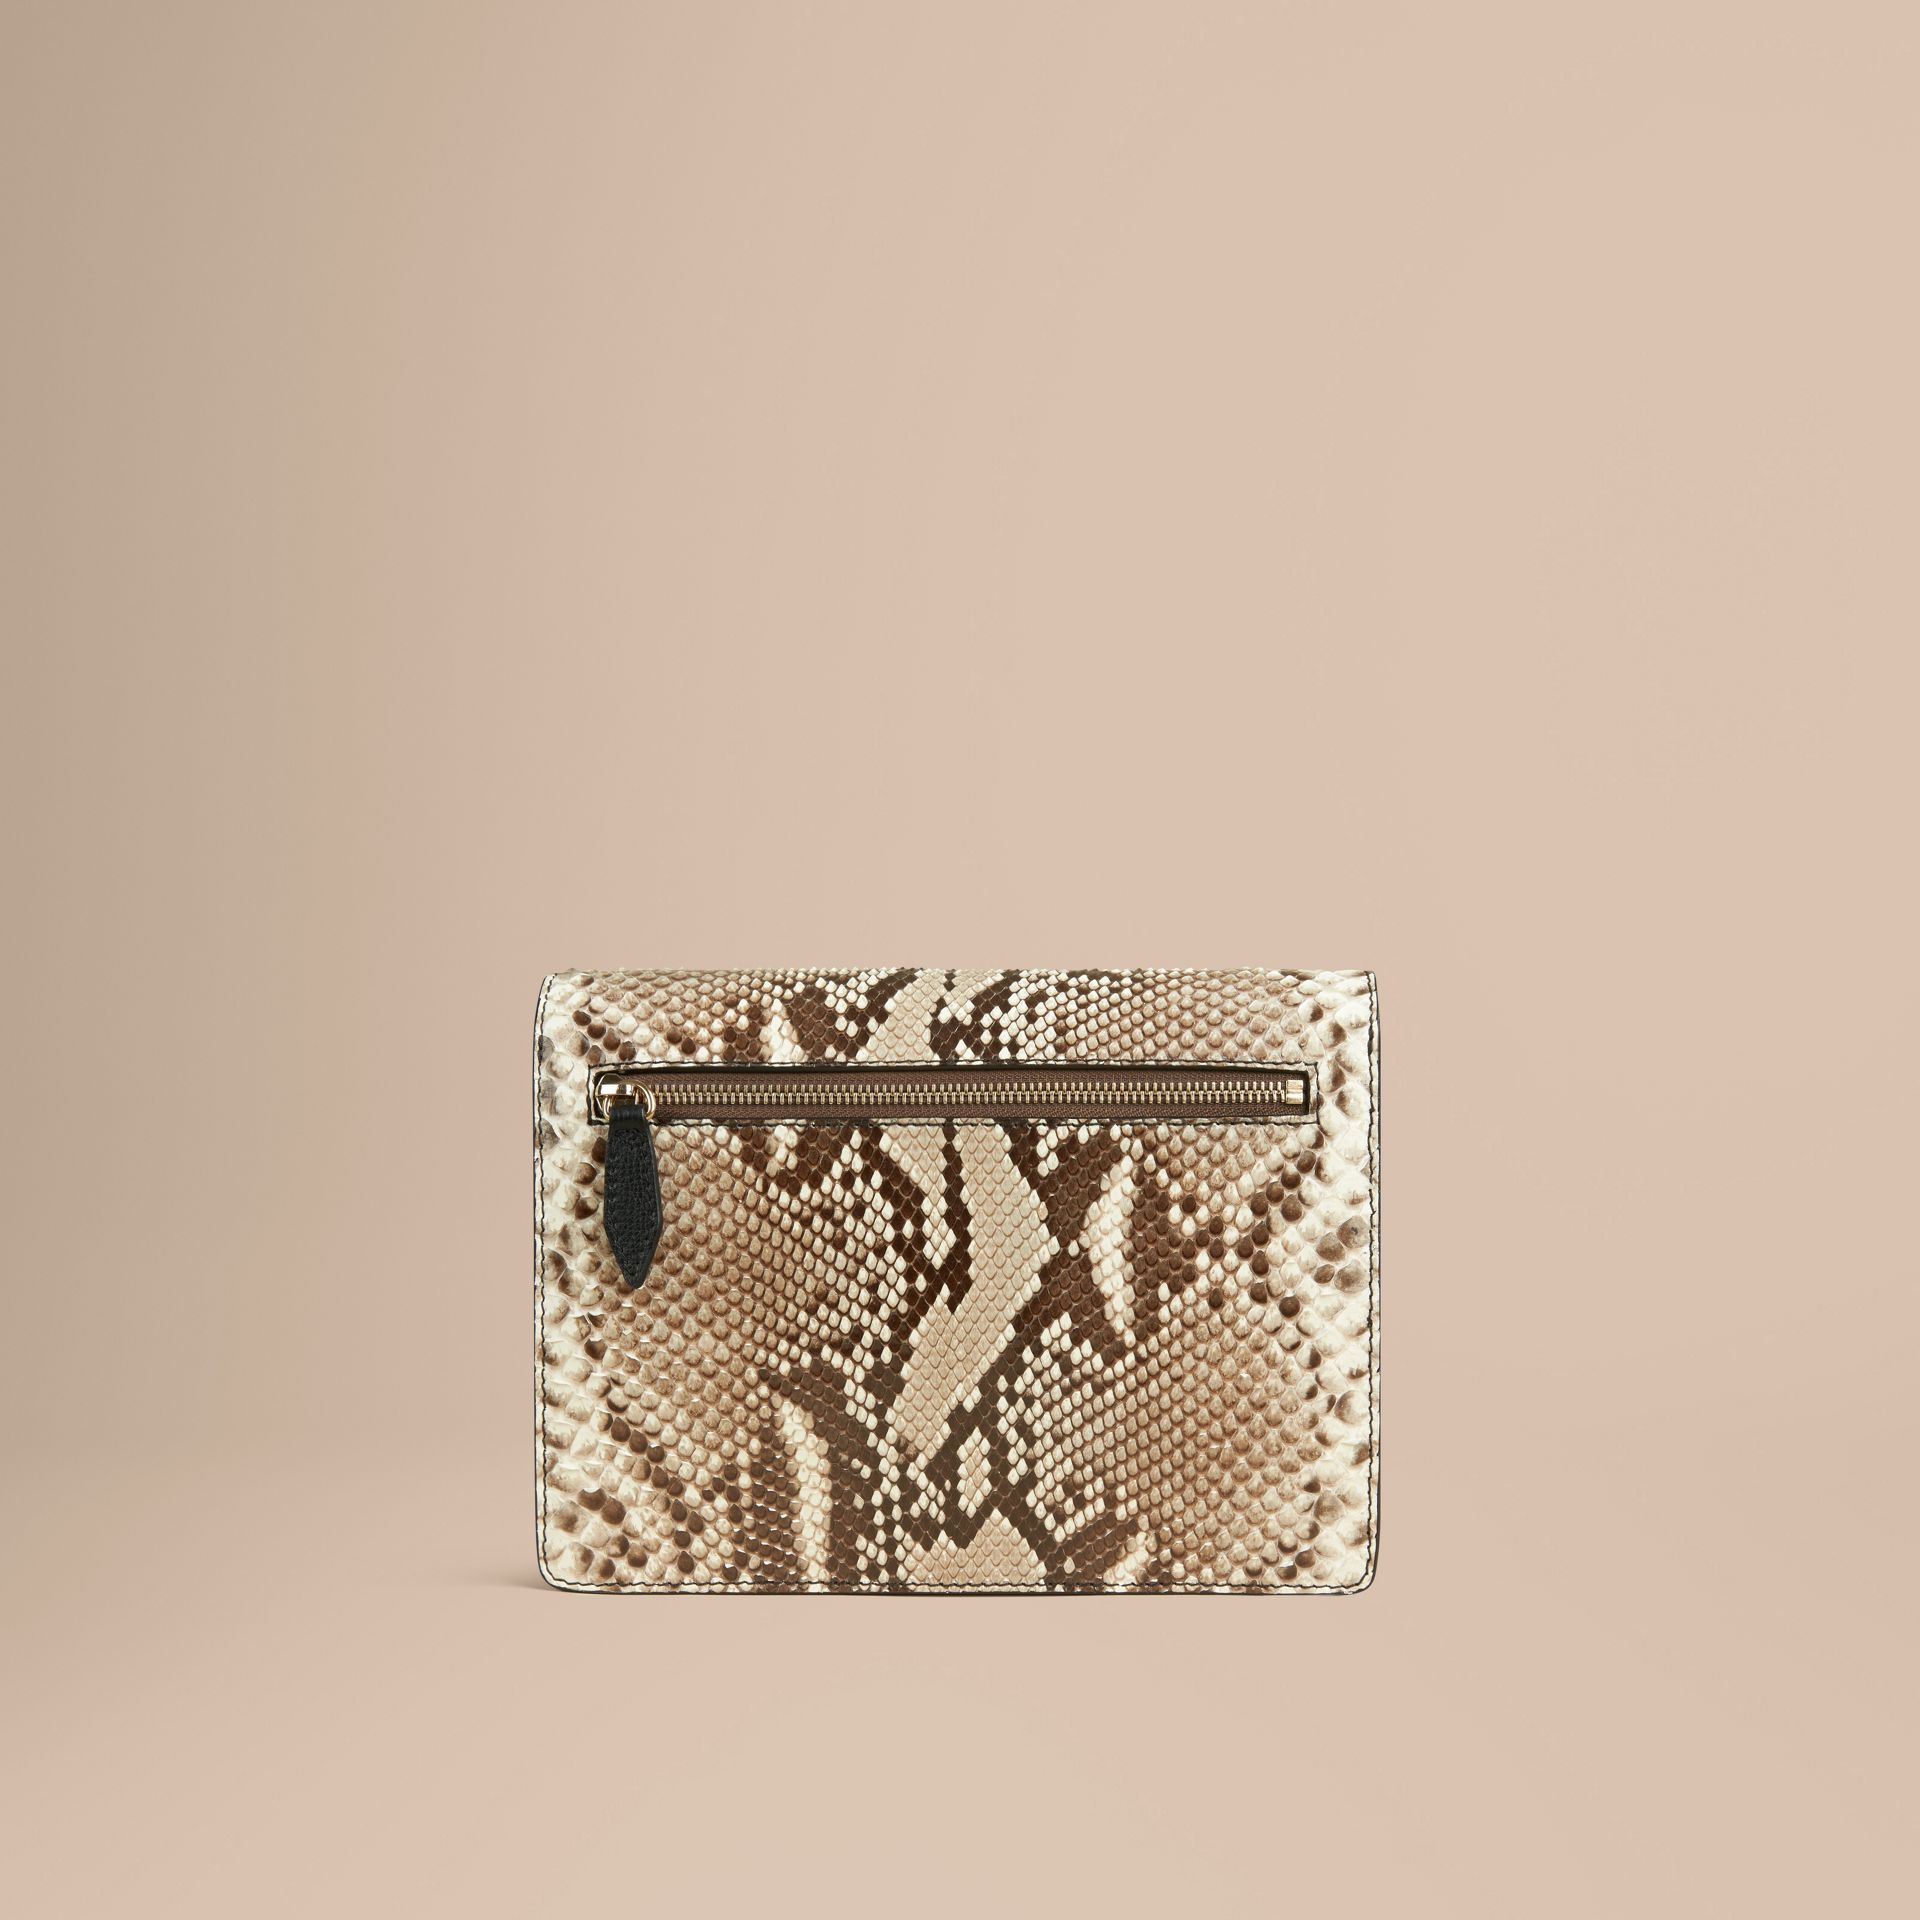 Small Python Crossbody Bag in Natural - Women | Burberry - gallery image 3